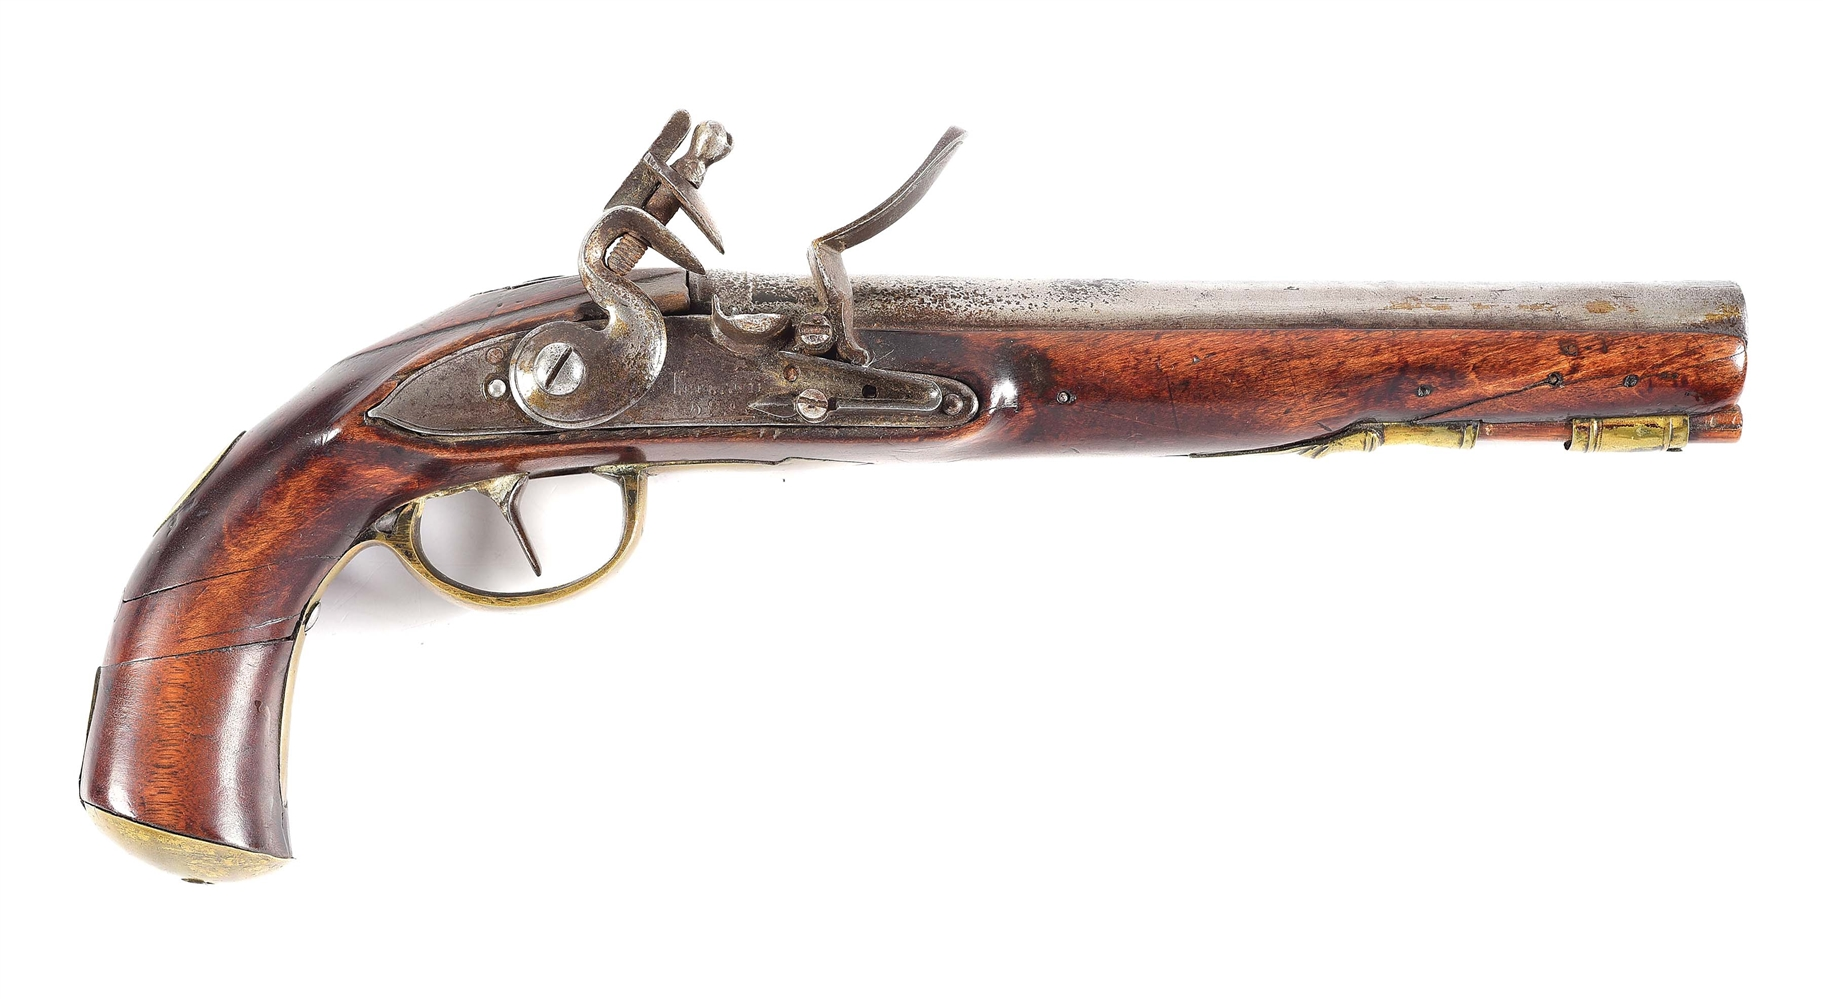 (A) SAMUEL COUTTY US INSPECTED FLINTLOCK MARTIAL PISTOL.